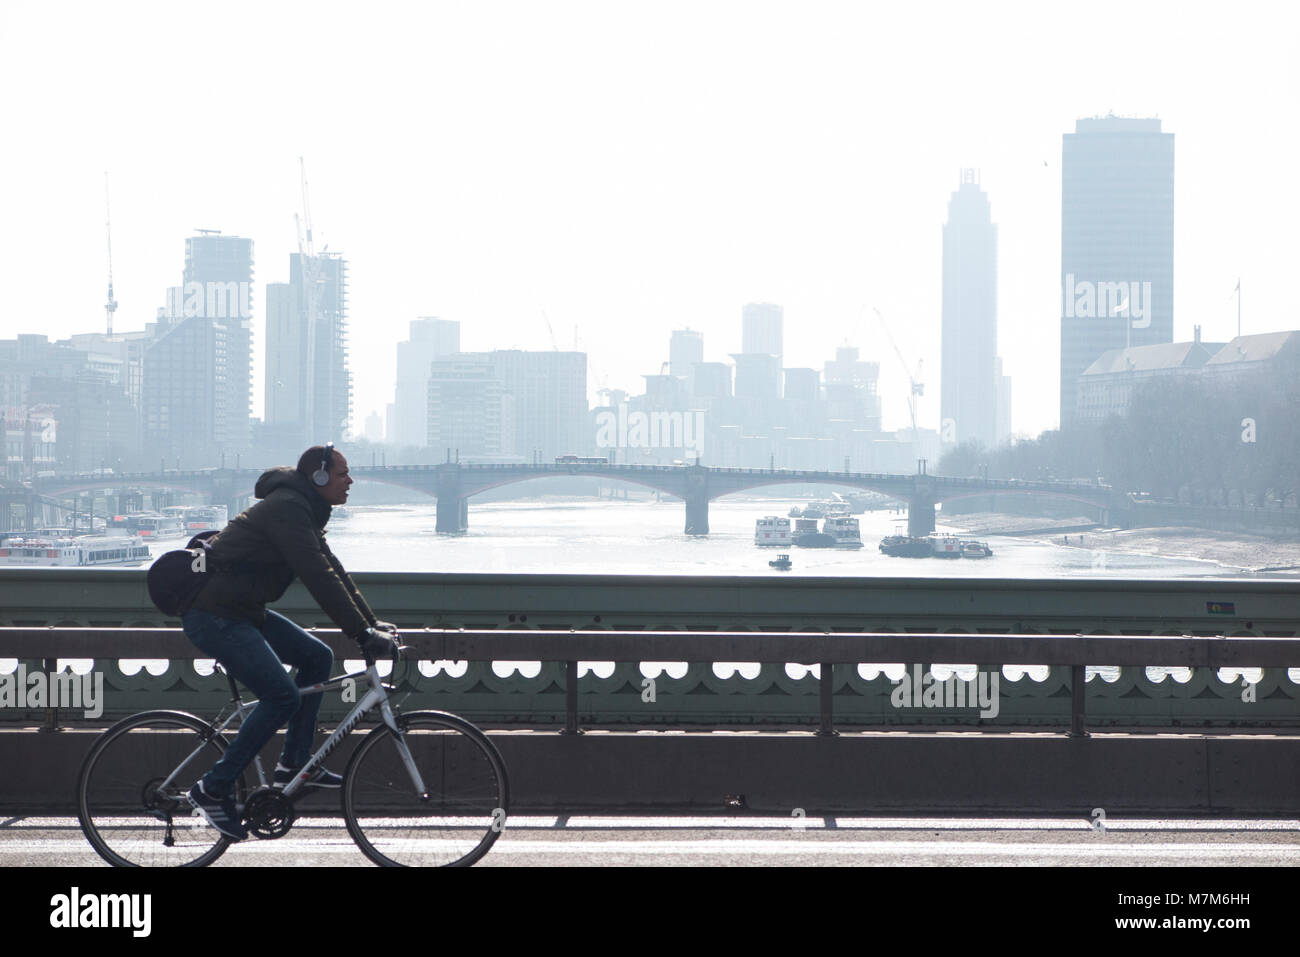 A cyclist crosses the River Thames on a cold and misty morning - Stock Image